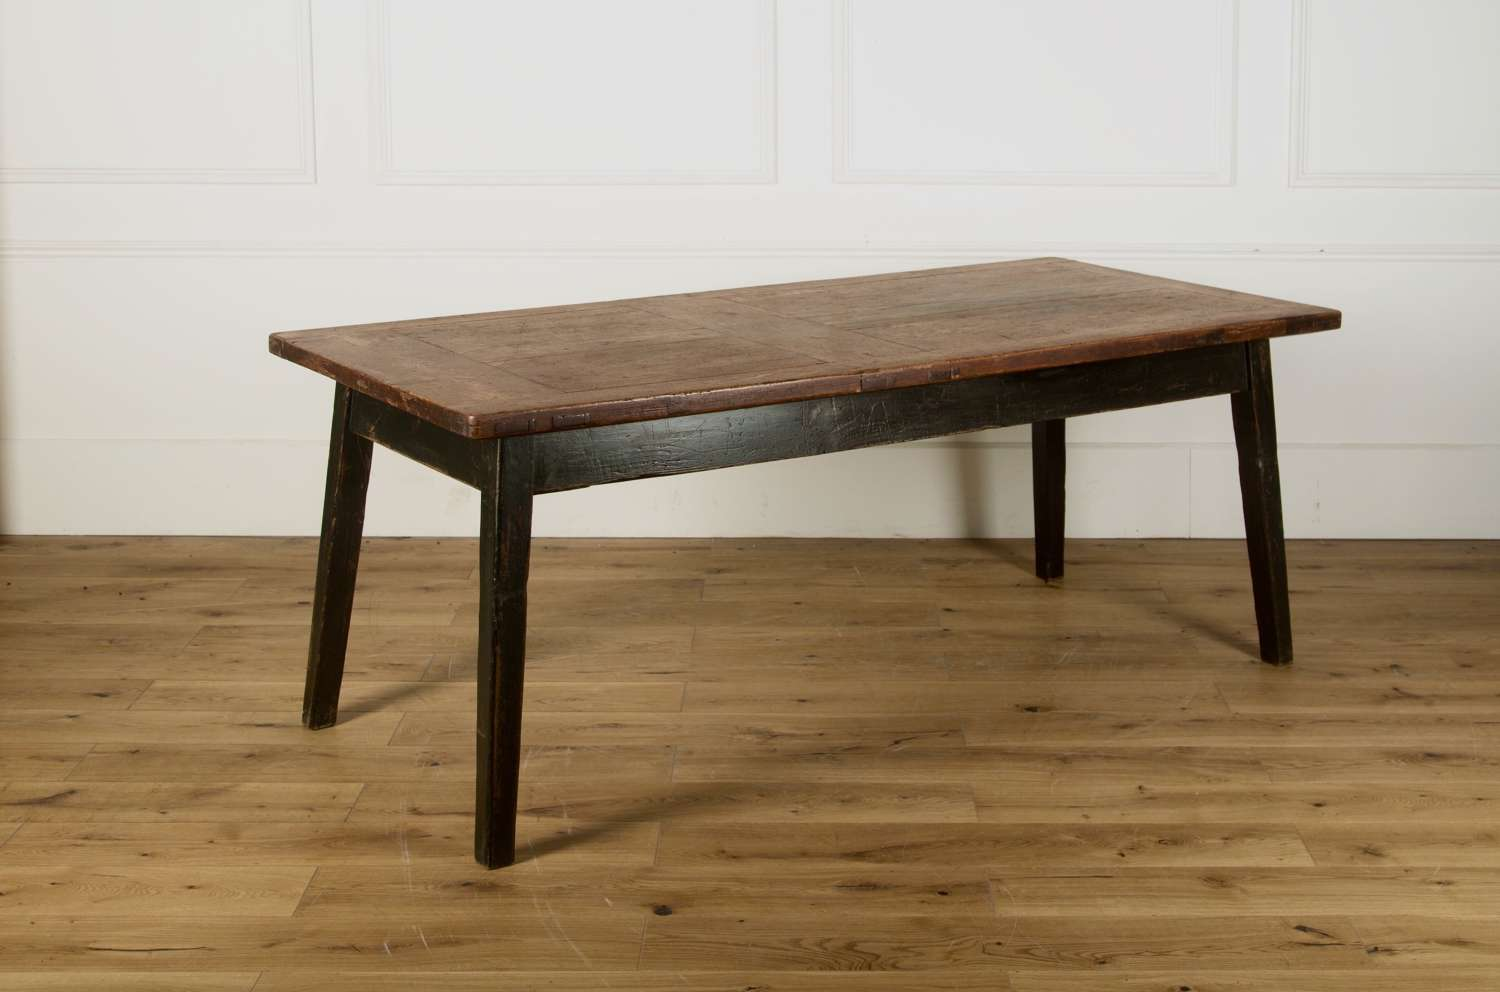 An Unusual English Country House Table